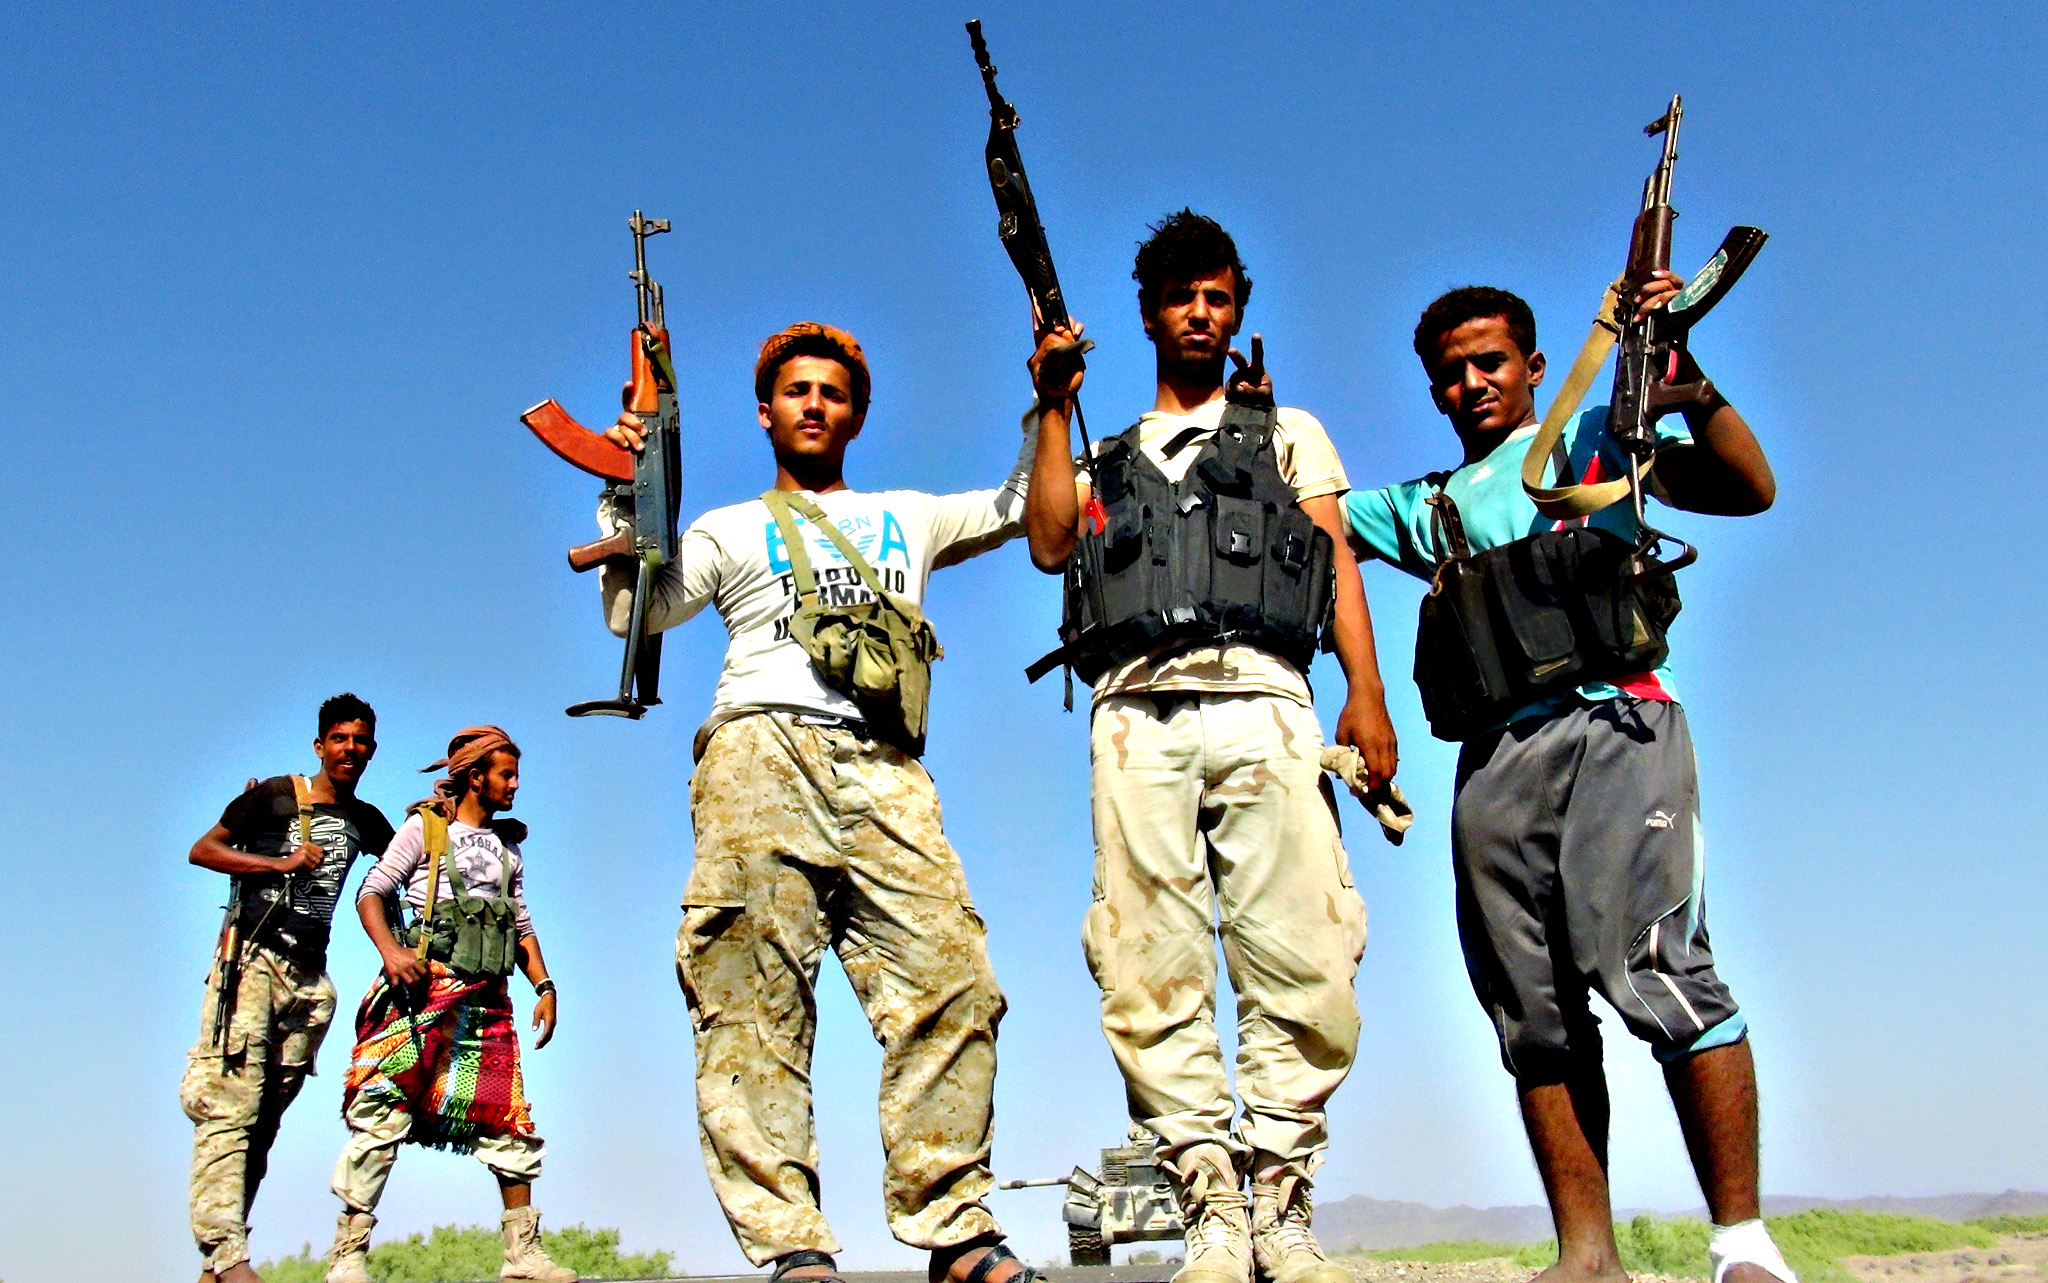 Armed Yemeni tribesmen from the Popular Resistance Committees, supporting forces loyal to Yemen's Saudi-backed President Abedrabbo Mansour Hadi flash their guns in the Dabab district in Taez province on. According to analysts recapturing the strategic province of Taez would help Yemeni pro-government forces in securing the unstable south and pave the way to the north, including the capital Sanaa